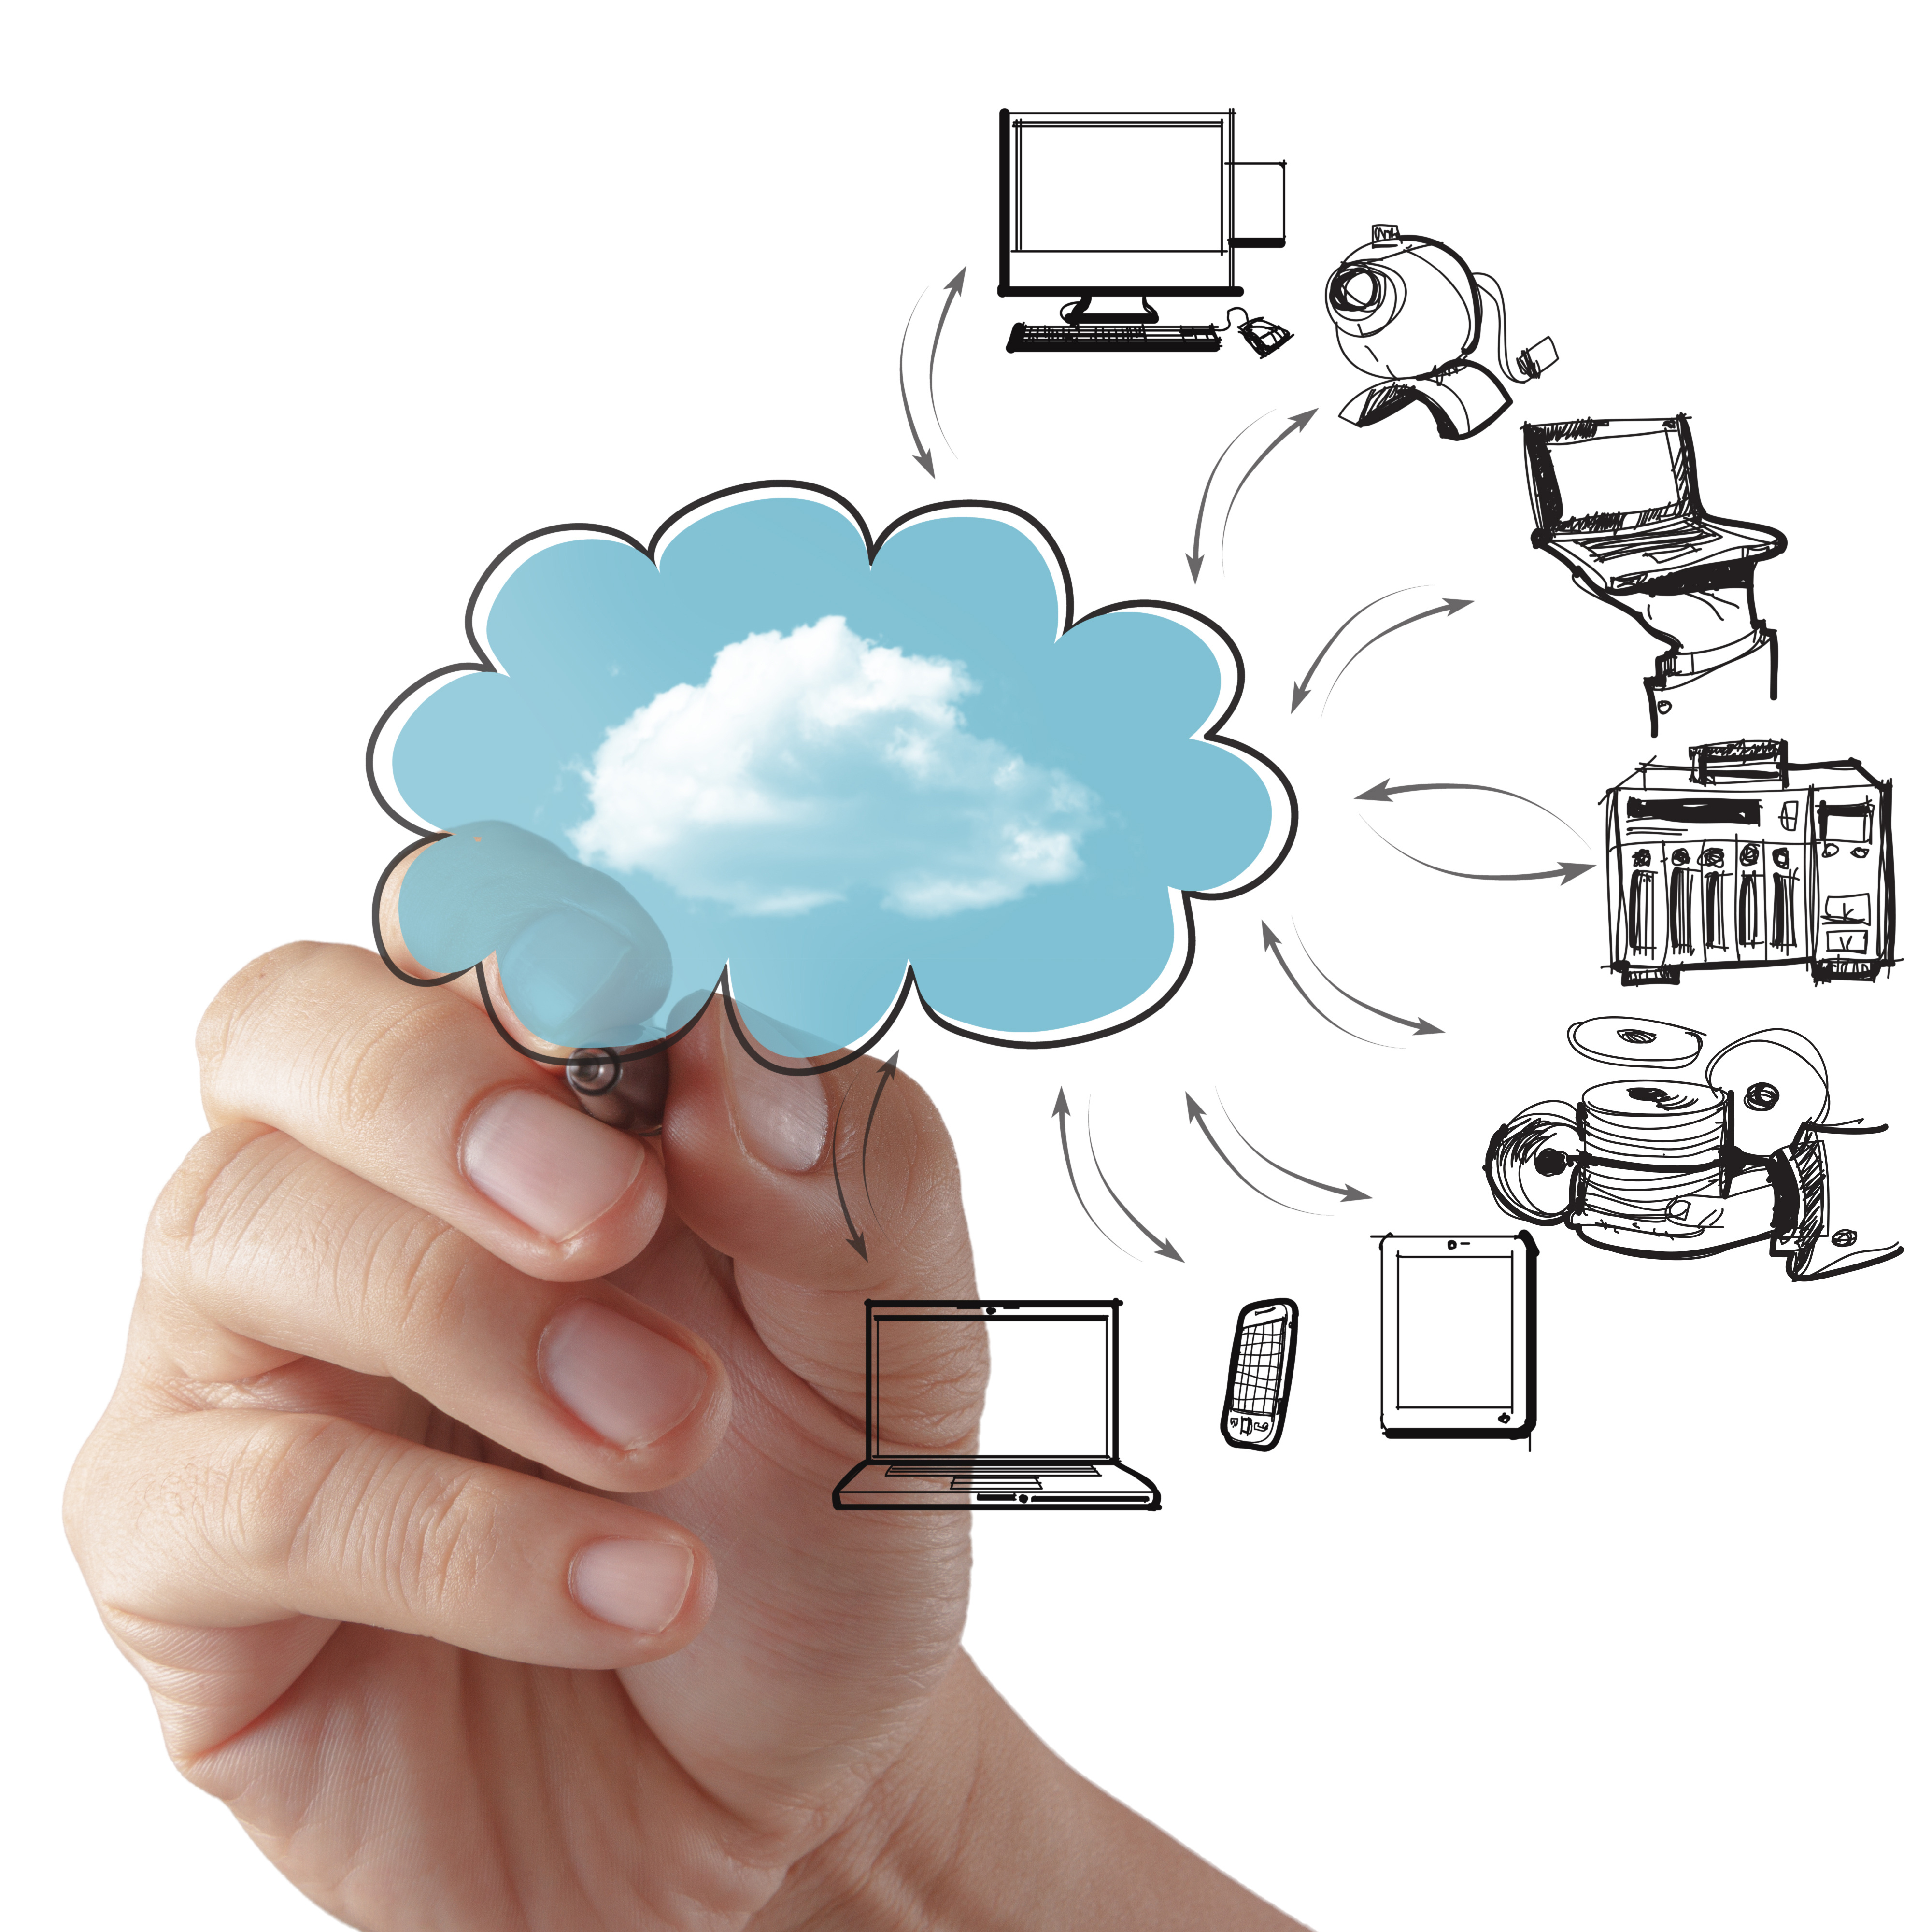 7 Major Current Trends in Cloud Computing - Image 1